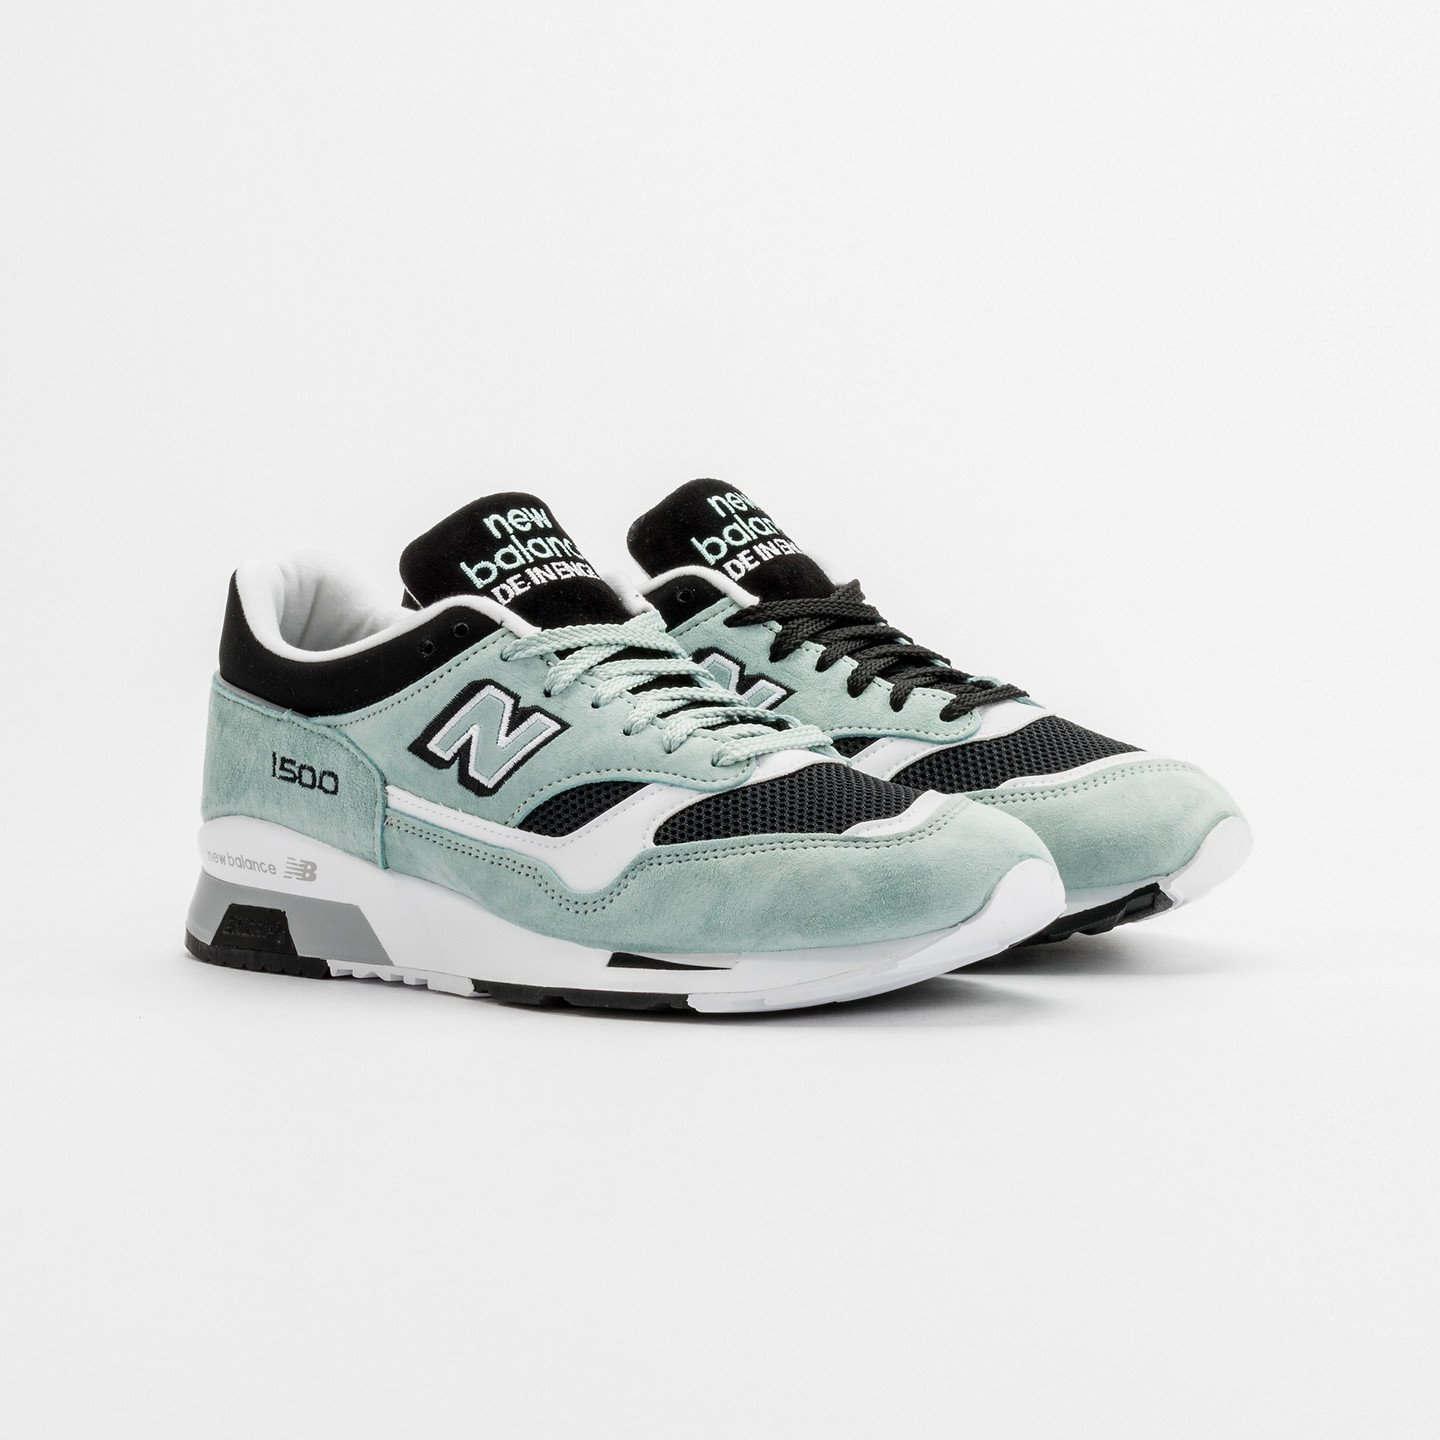 sports shoes b738a 5878a New Balance M1500 MGK - Made in England | Mint / Black ...